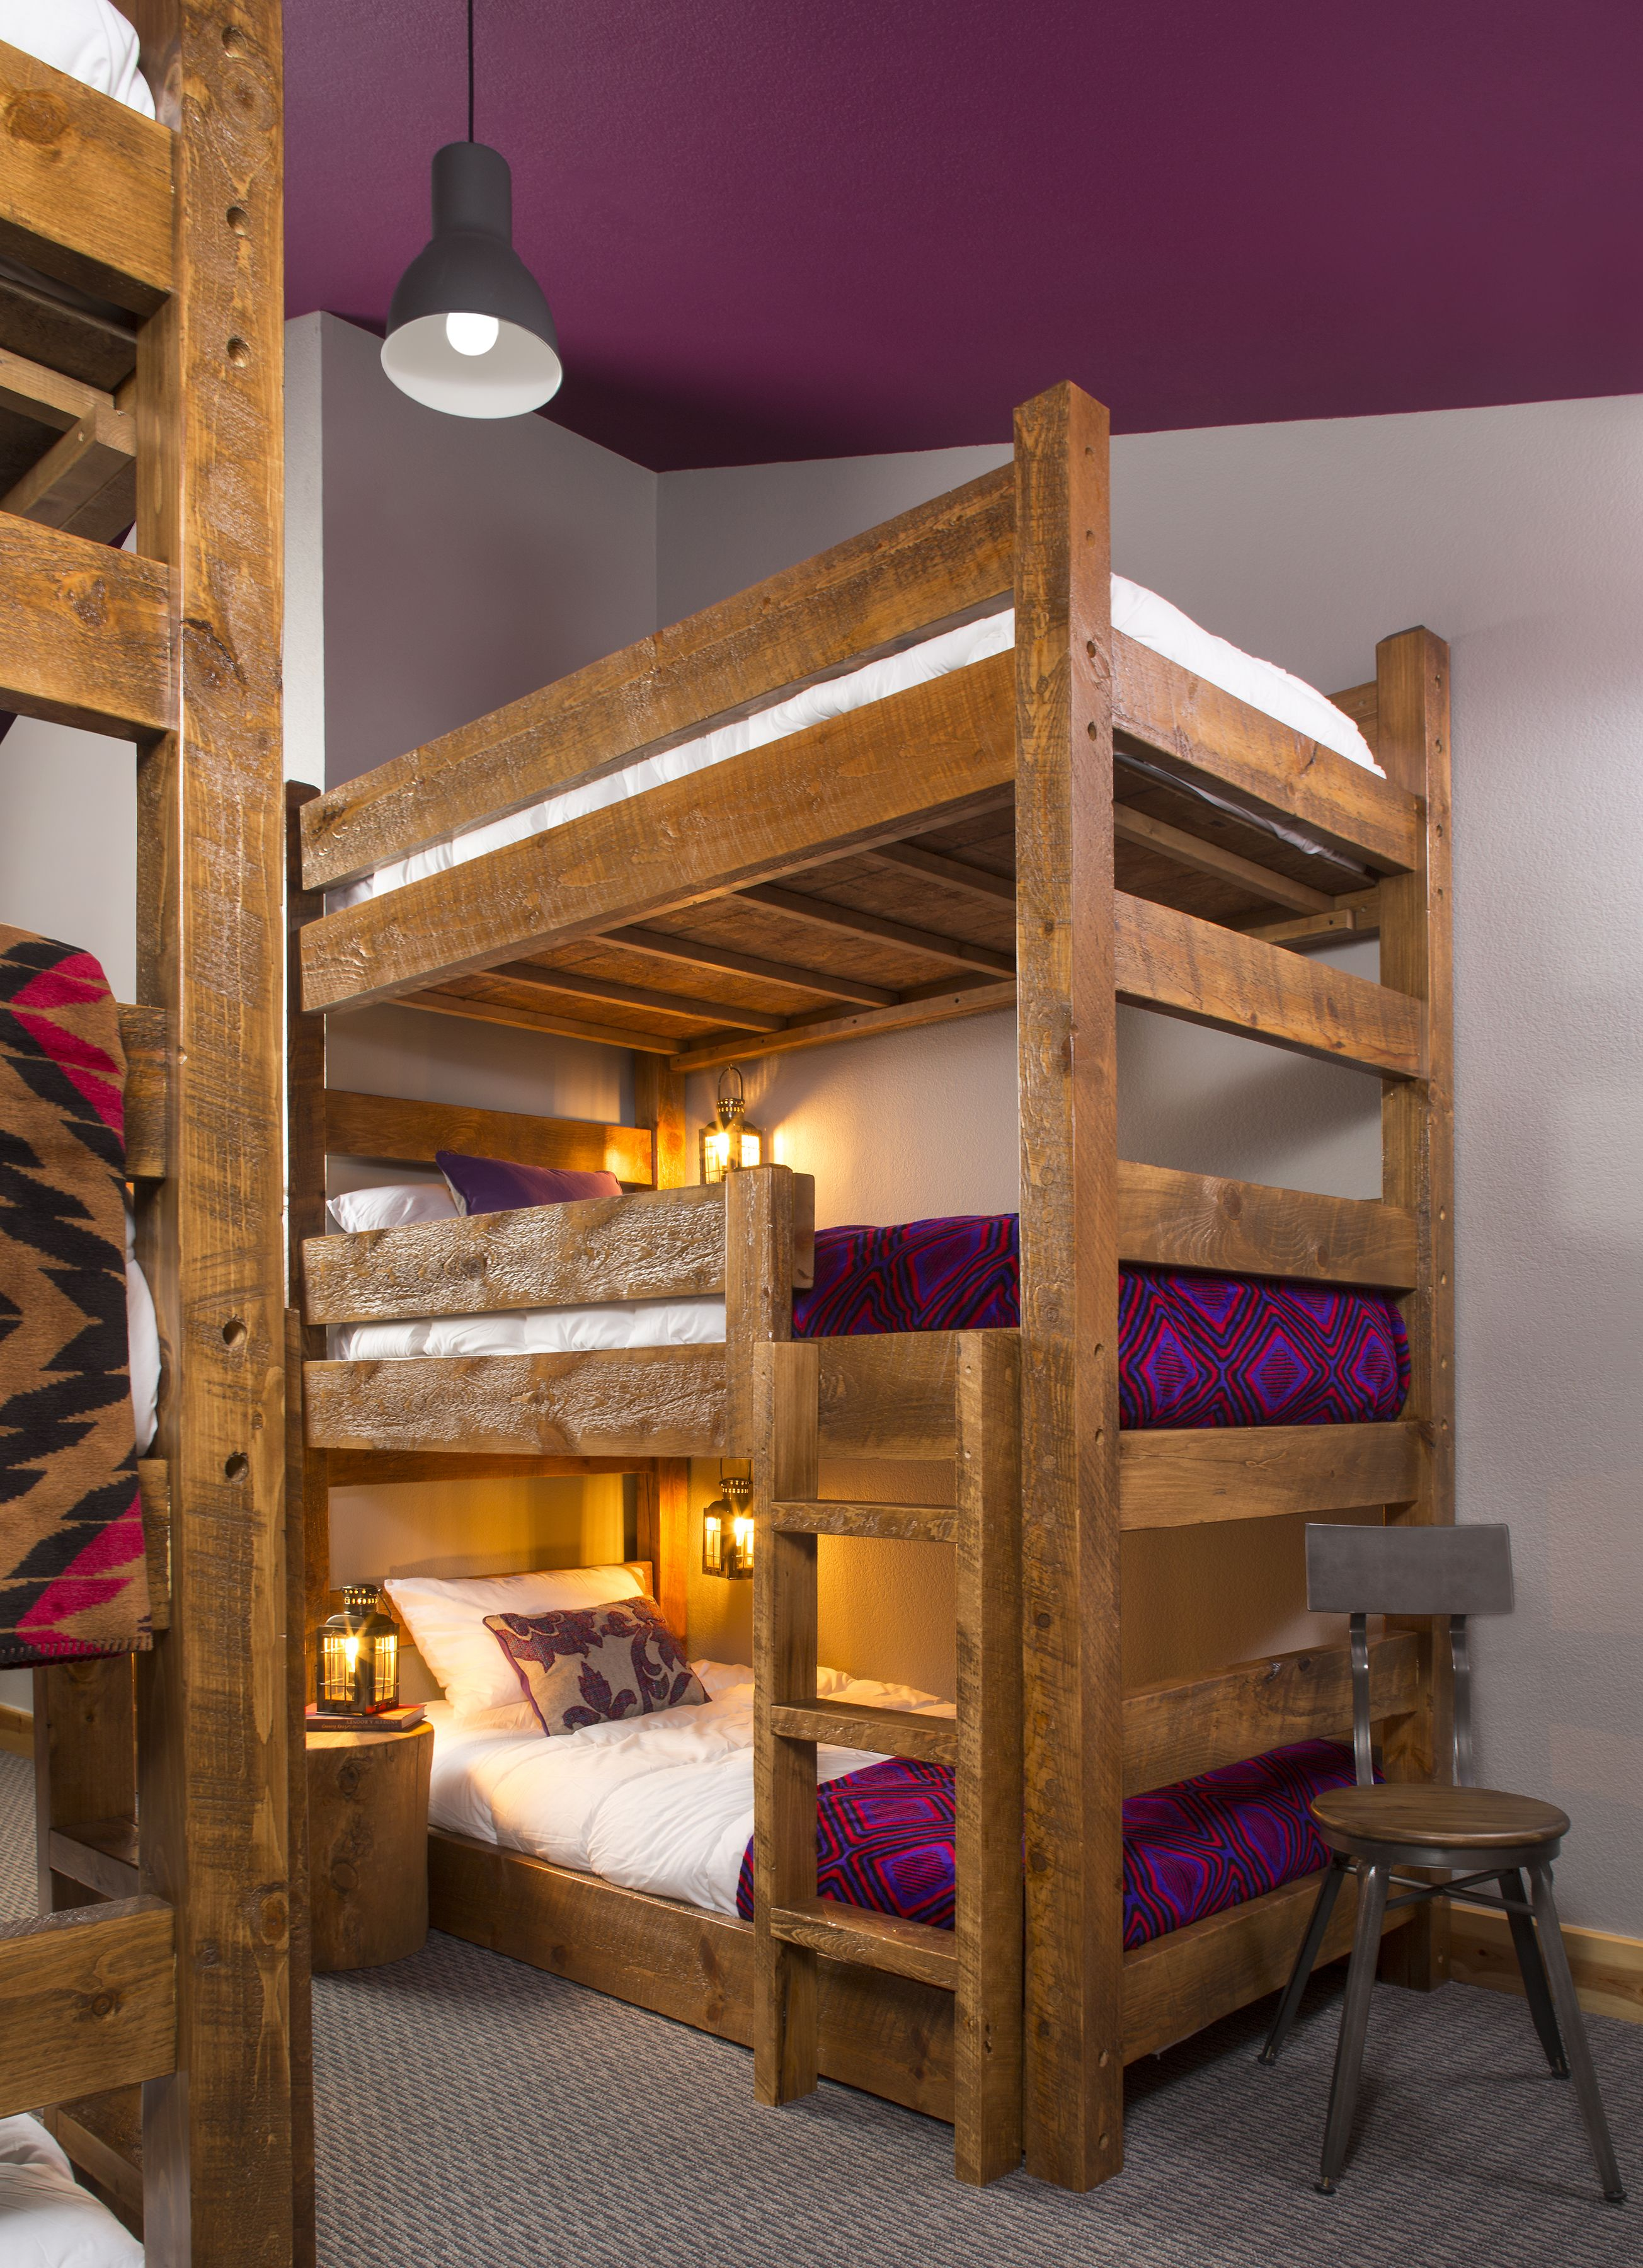 Bunk bed in hostel room hostel triple bunk beds cool - Cool beds for sale ...